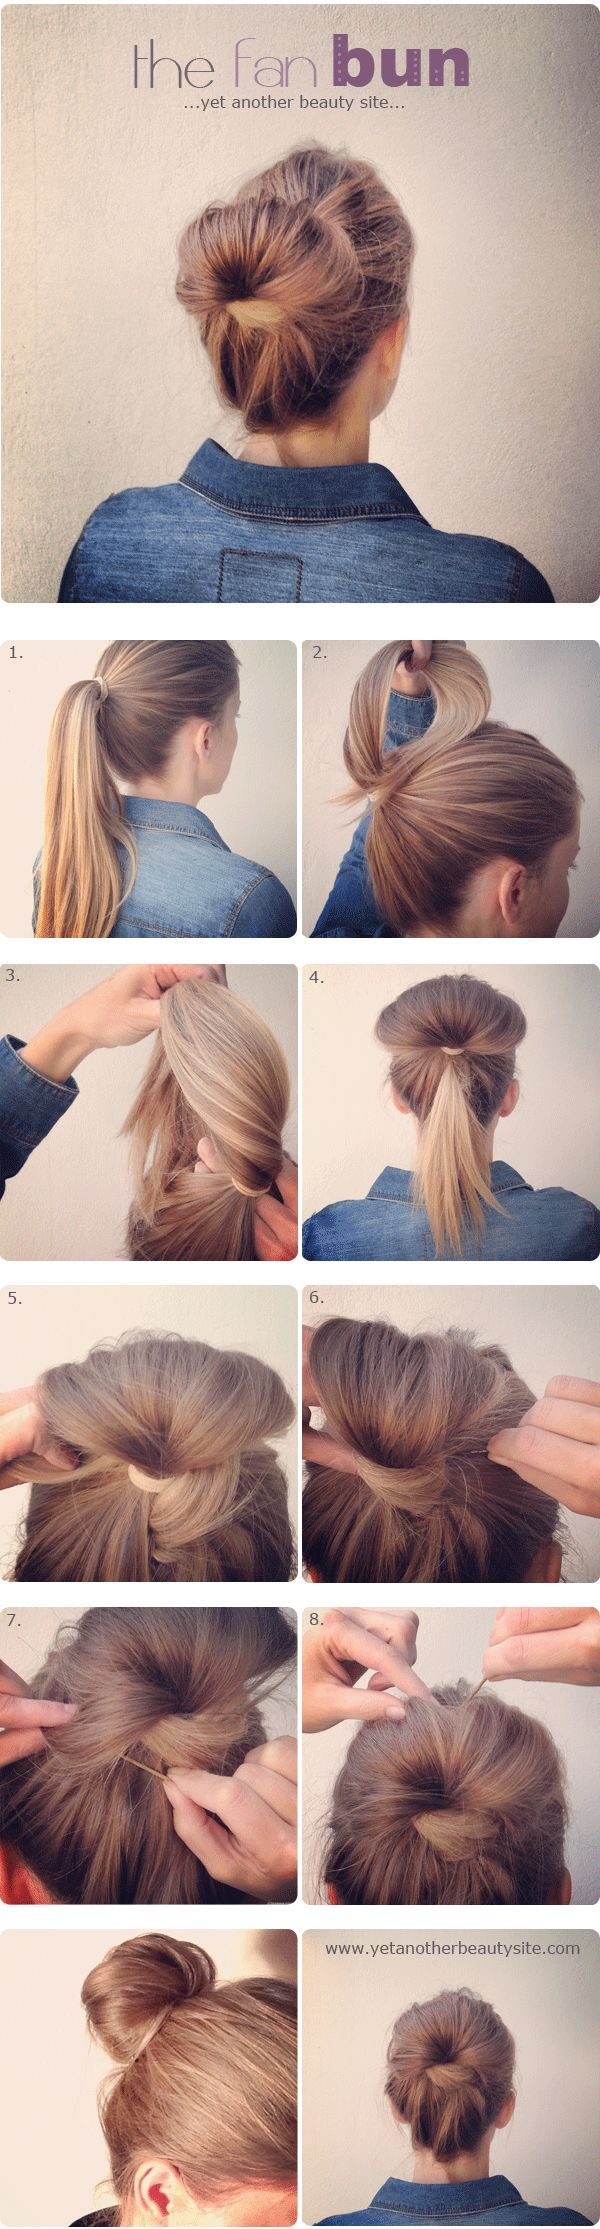 Outstanding 1000 Ideas About Quick Easy Updo On Pinterest Easy Updo Updo Hairstyles For Men Maxibearus